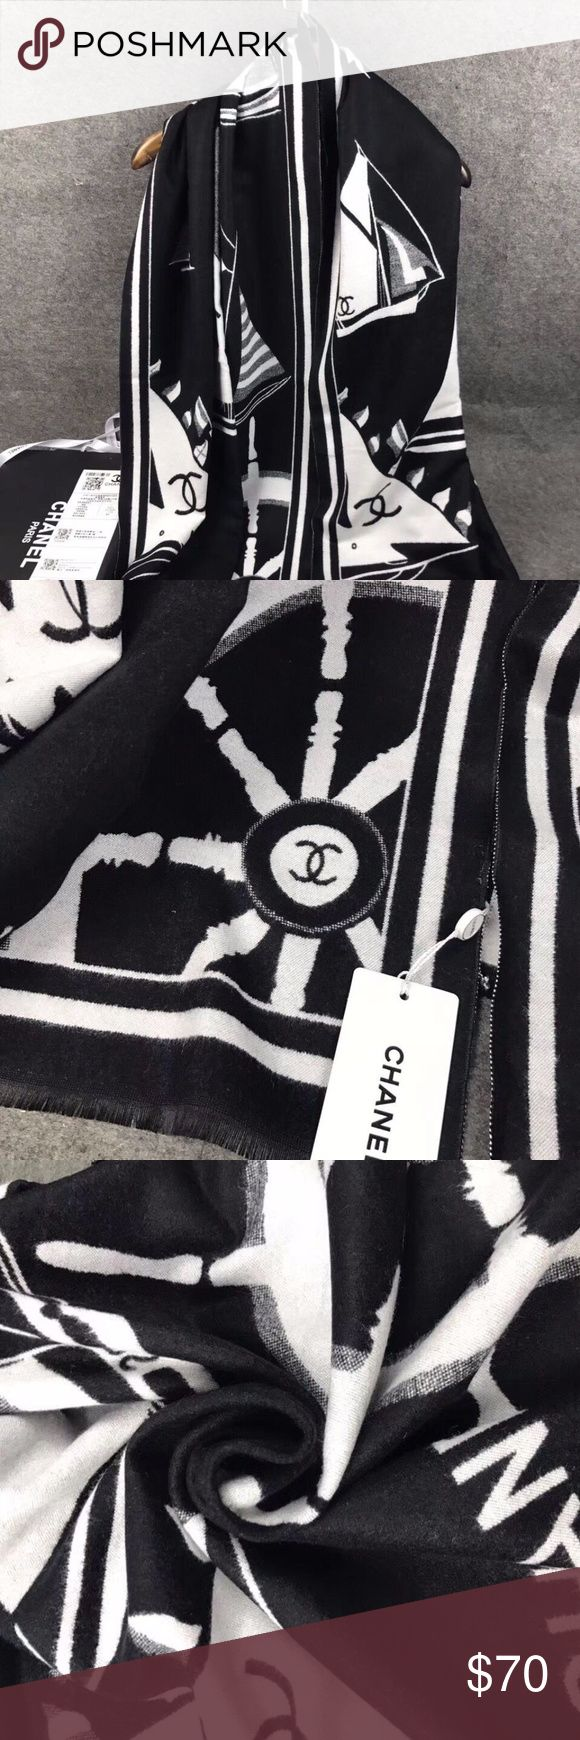 Sale!!!Cashmere Scarf CHANEL Scarf become very hot sale products. Not only keep you warm, but also keep you fashion in winter. Kinds of CHANEL Scarfs available now.Delivery Time approximate 7-10 Days! CHANEL Accessories Scarves & Wraps